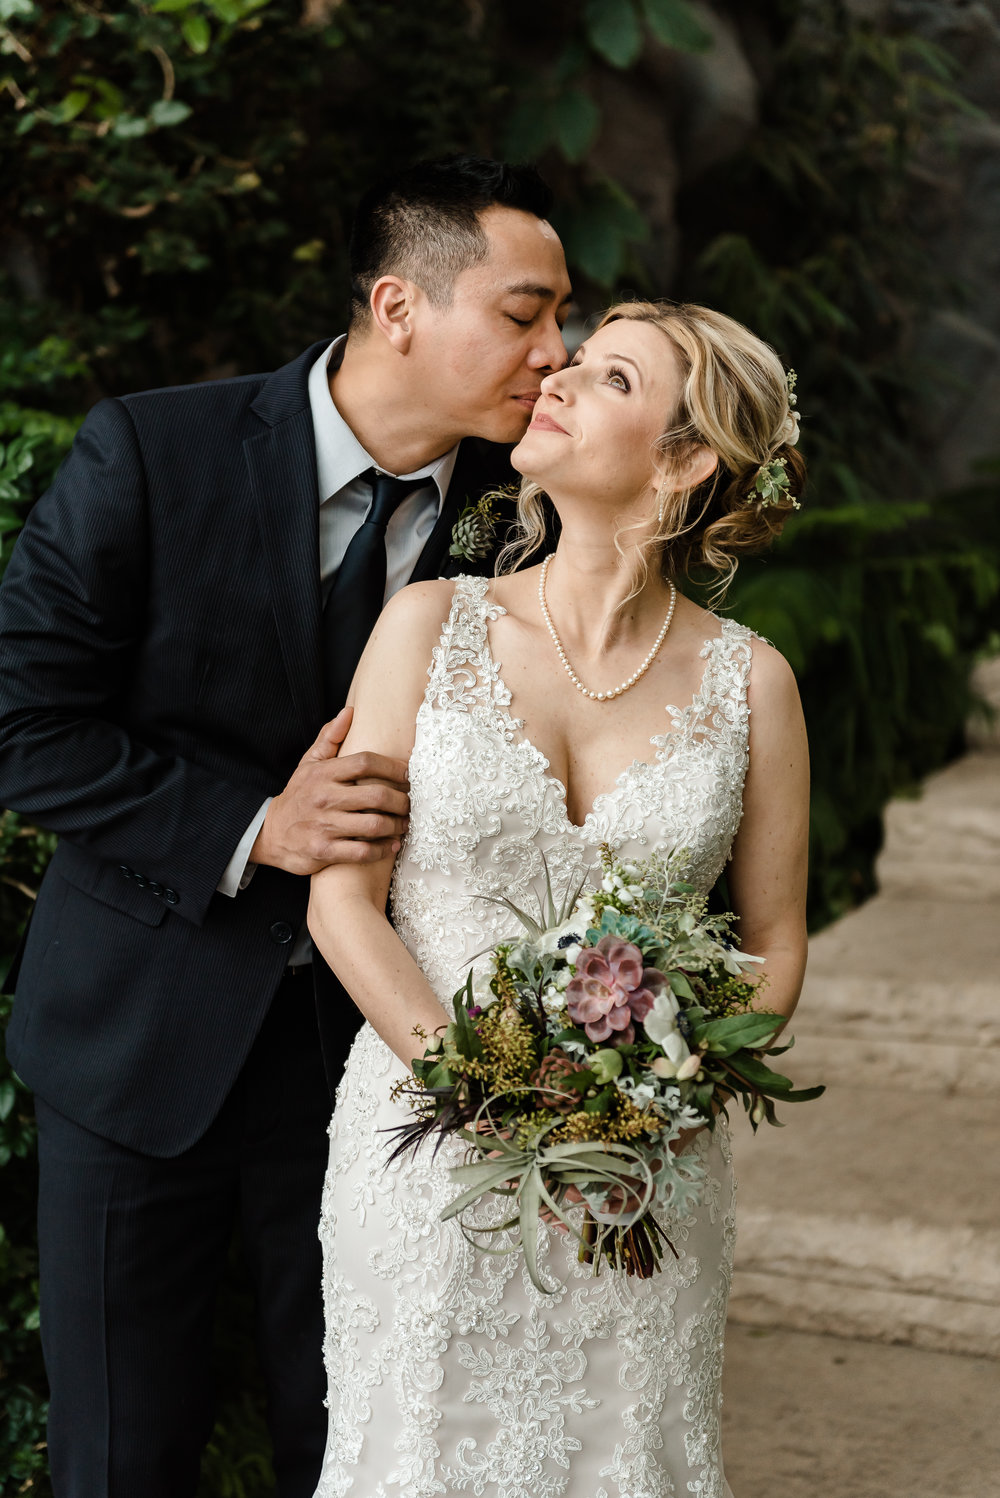 Kristin and Marlon - Wedding - Central Park Woodbury-167.jpg